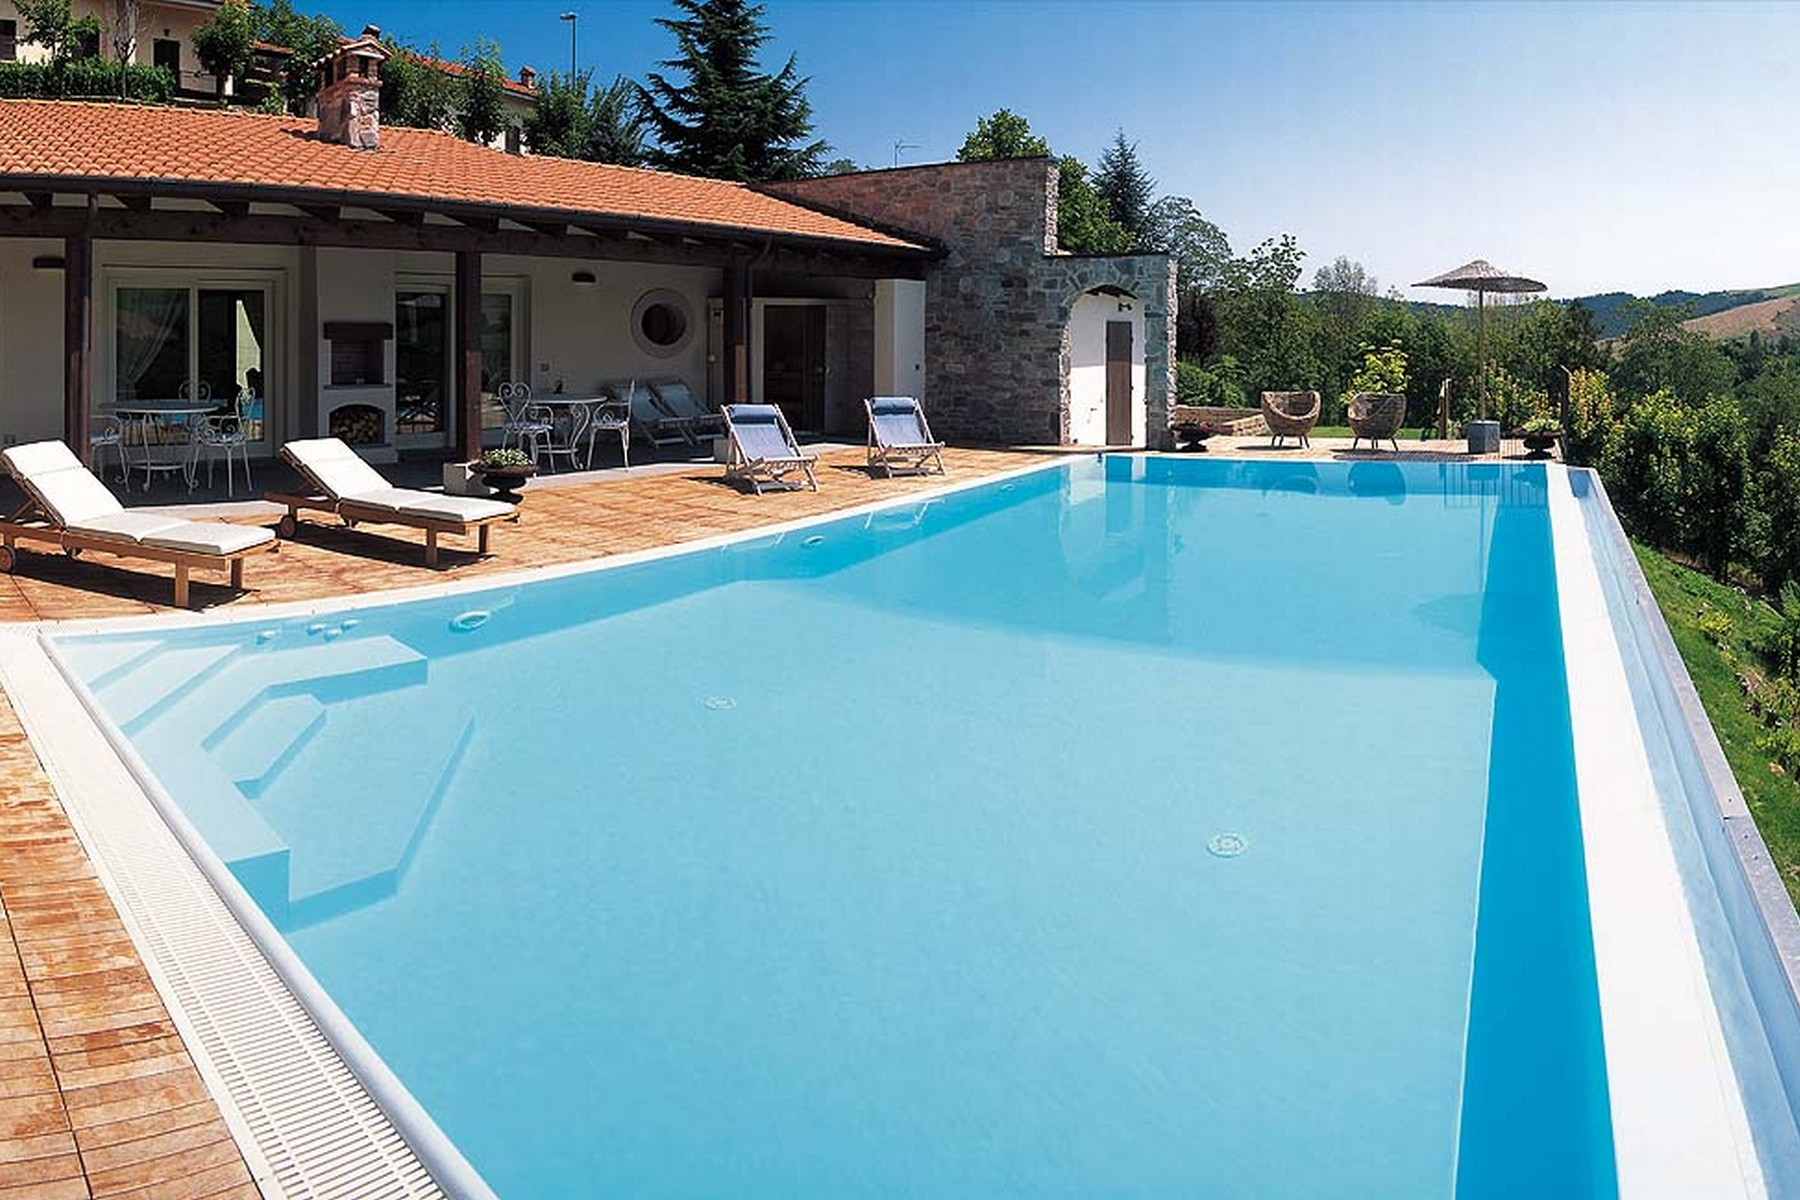 Other Residential for Sale at Residential property for Sale in Fortunago (Italy) Fortunago, Pavia, Italy